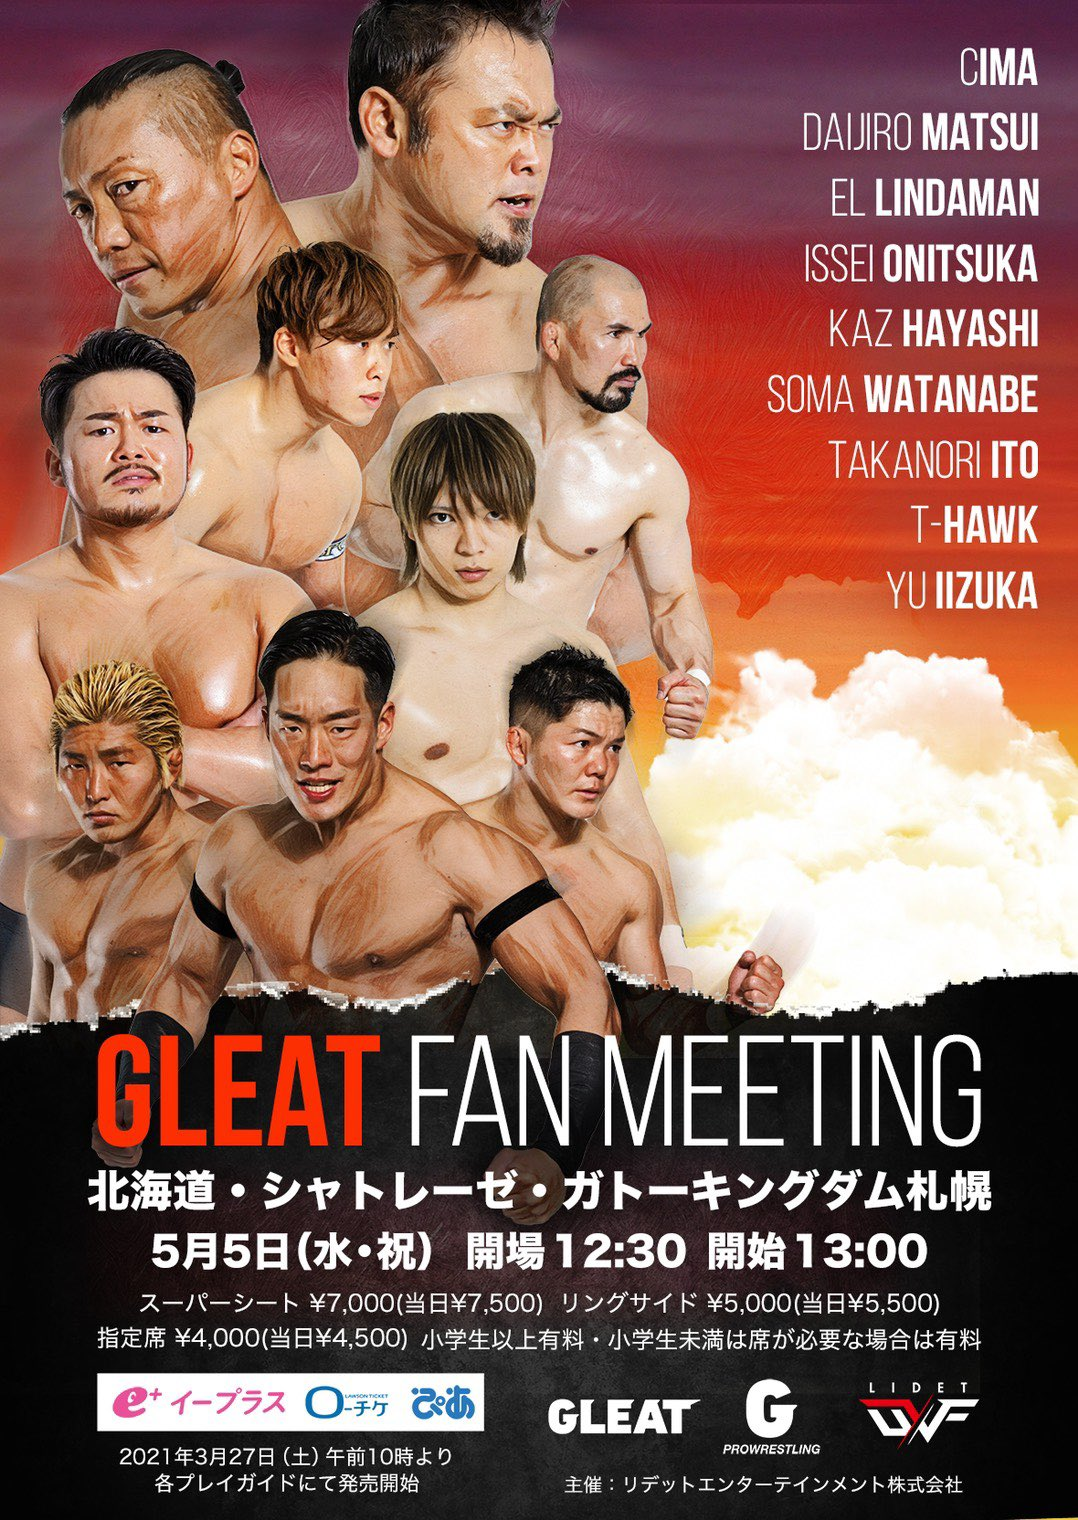 GLEAT FAN MEETING in SAPPORO